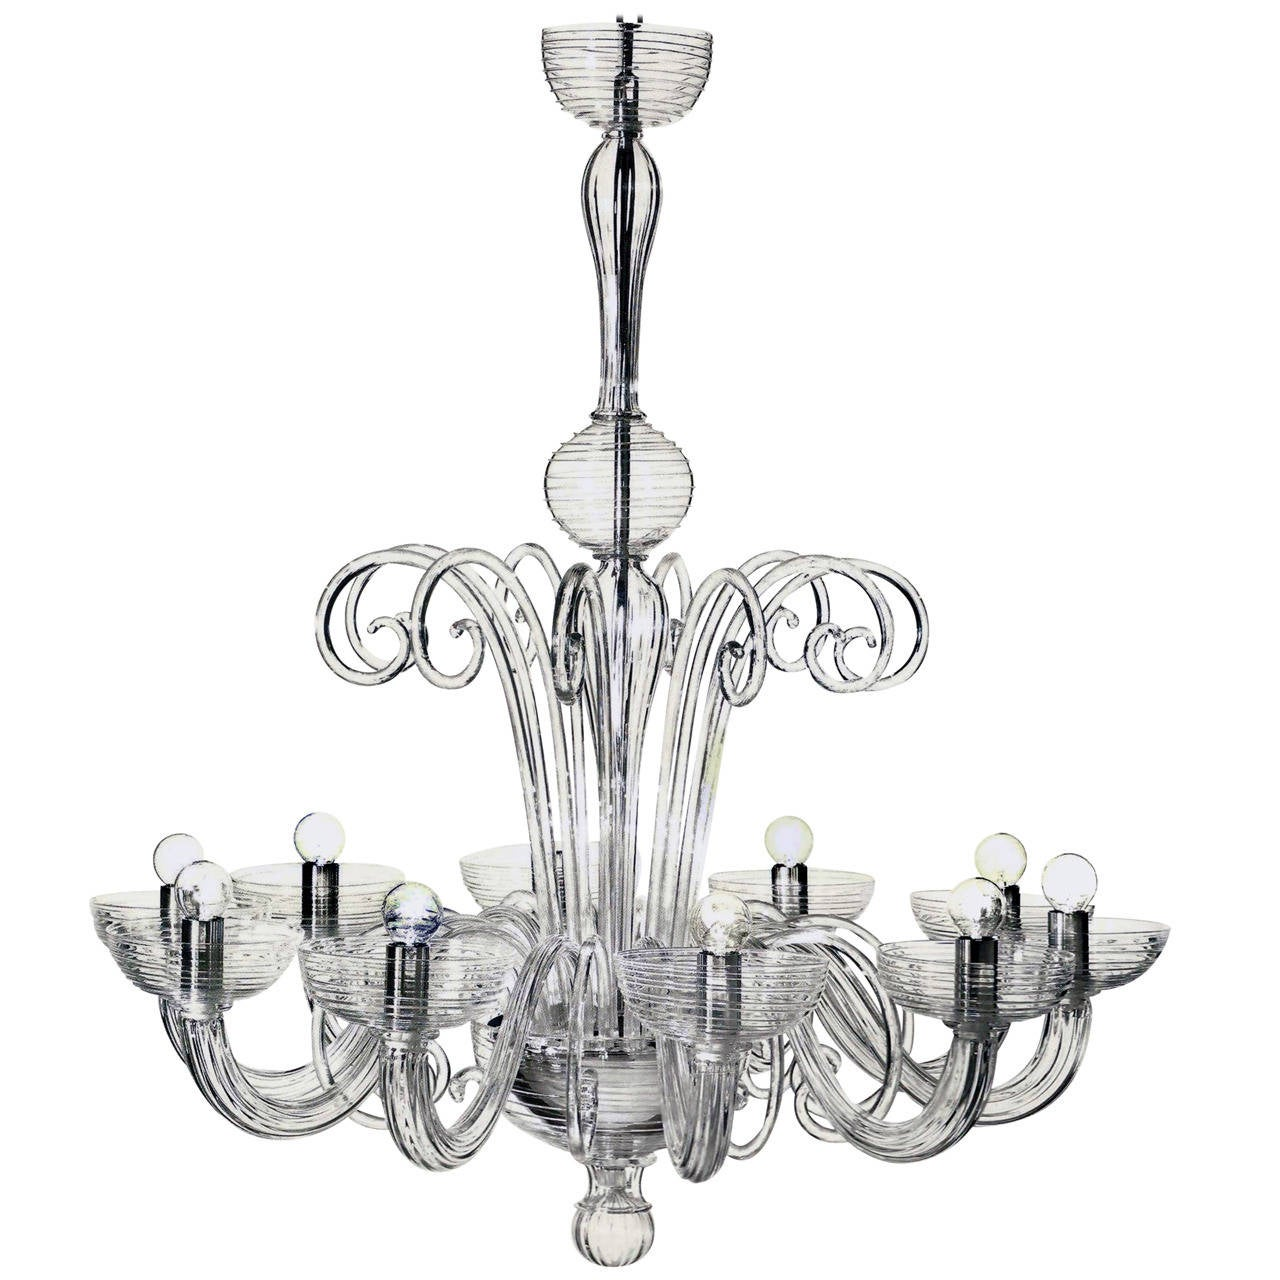 Two Italian Mid-Century Style Clear Murano / Venetian Glass Ten-Arm Chandeliers